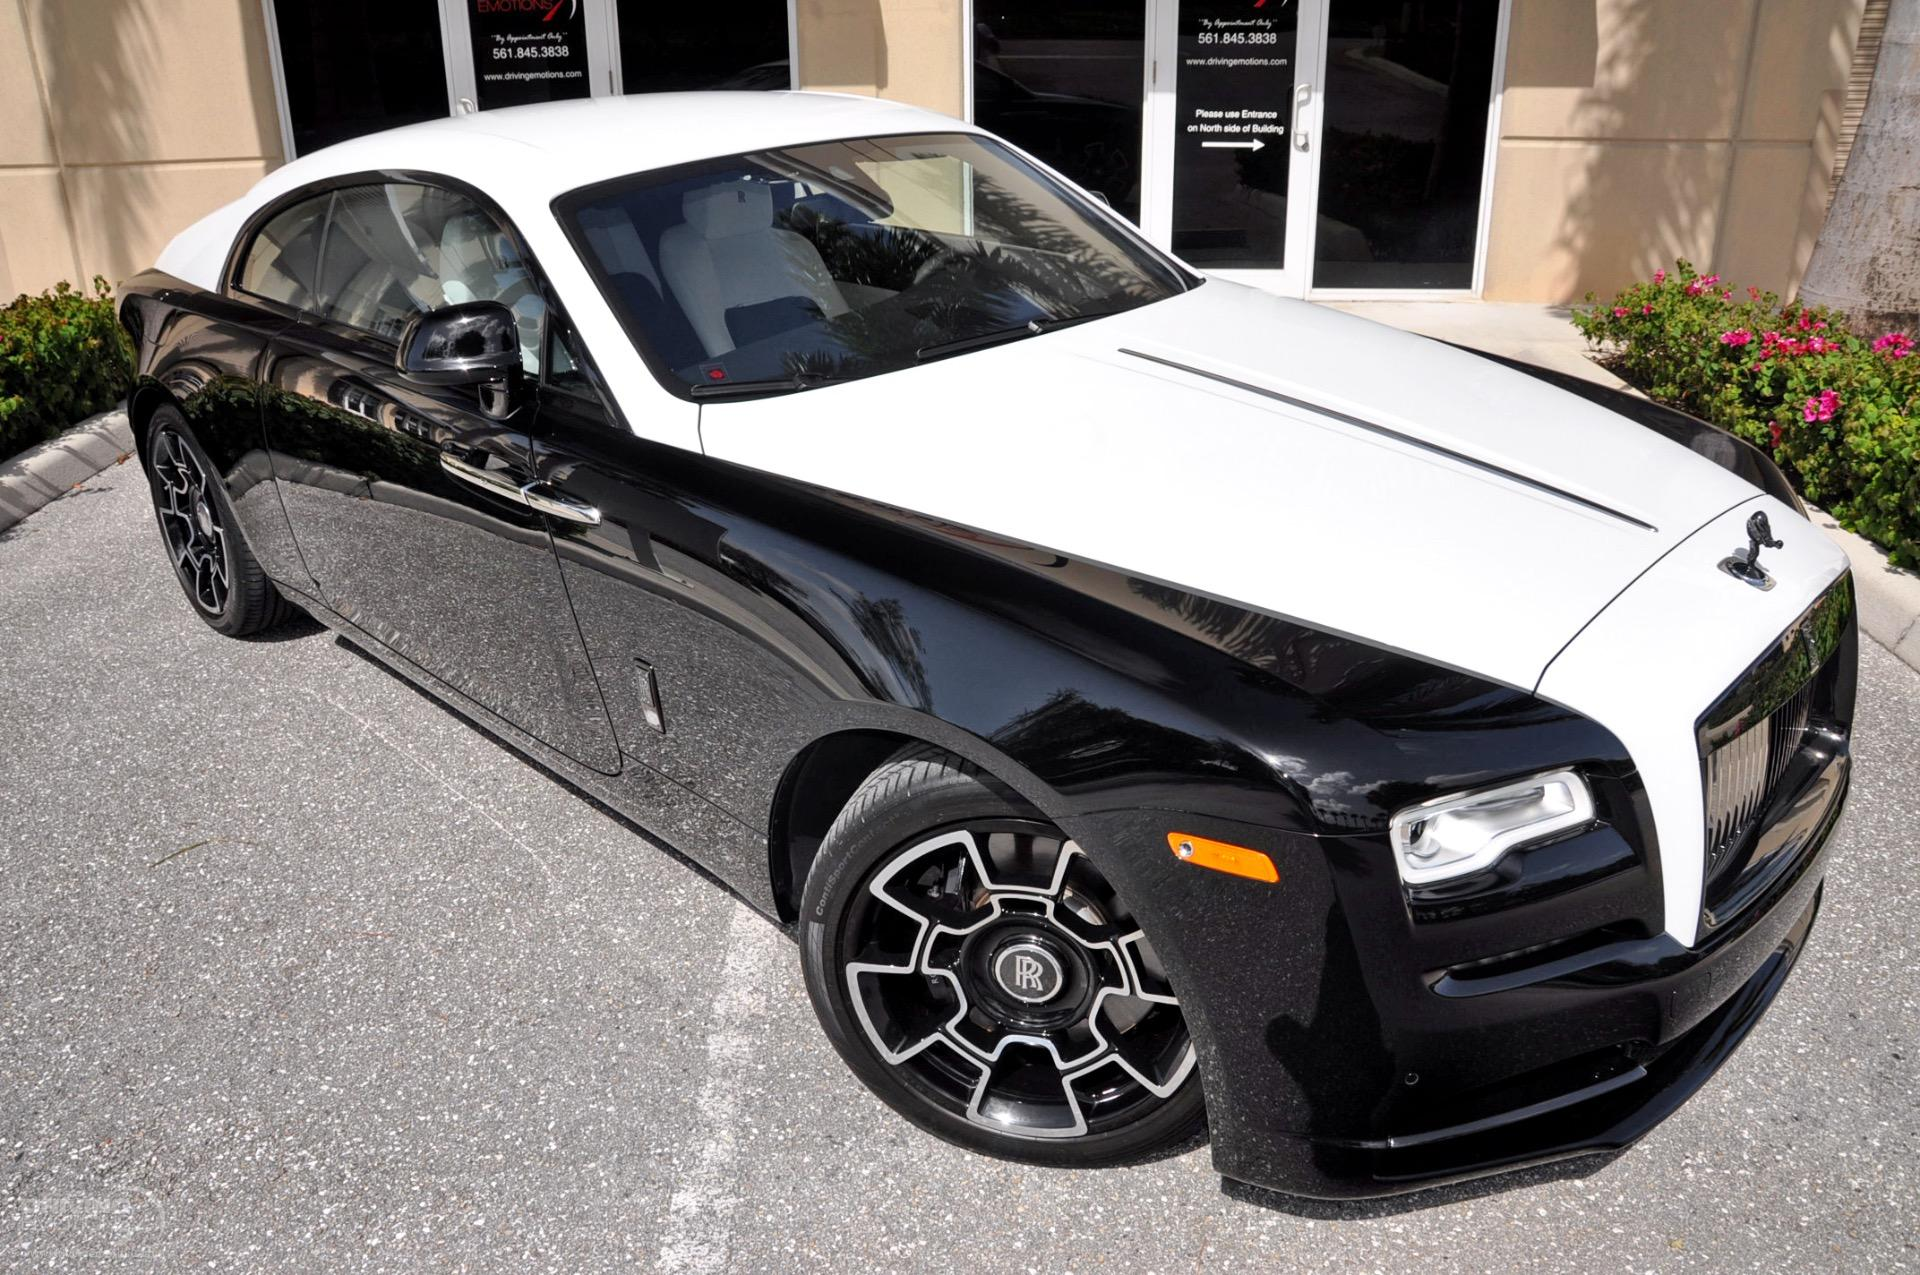 2017 rolls royce wraith black badge edition stock 5975 for sale near lake park fl fl rolls. Black Bedroom Furniture Sets. Home Design Ideas